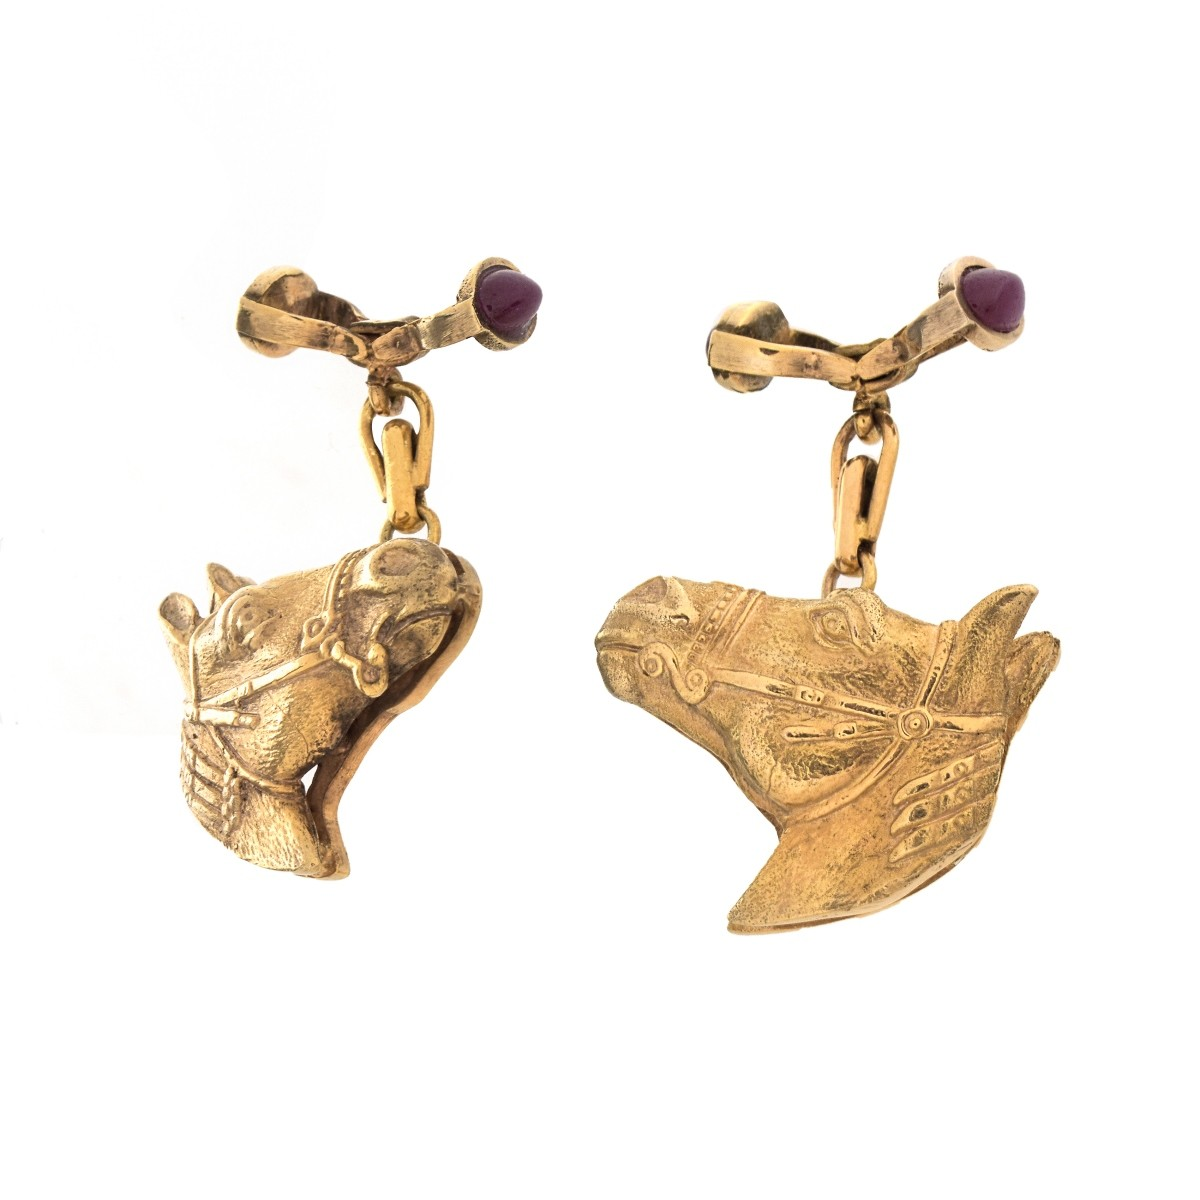 Russian Faberge 14K and Ruby Cufflinks